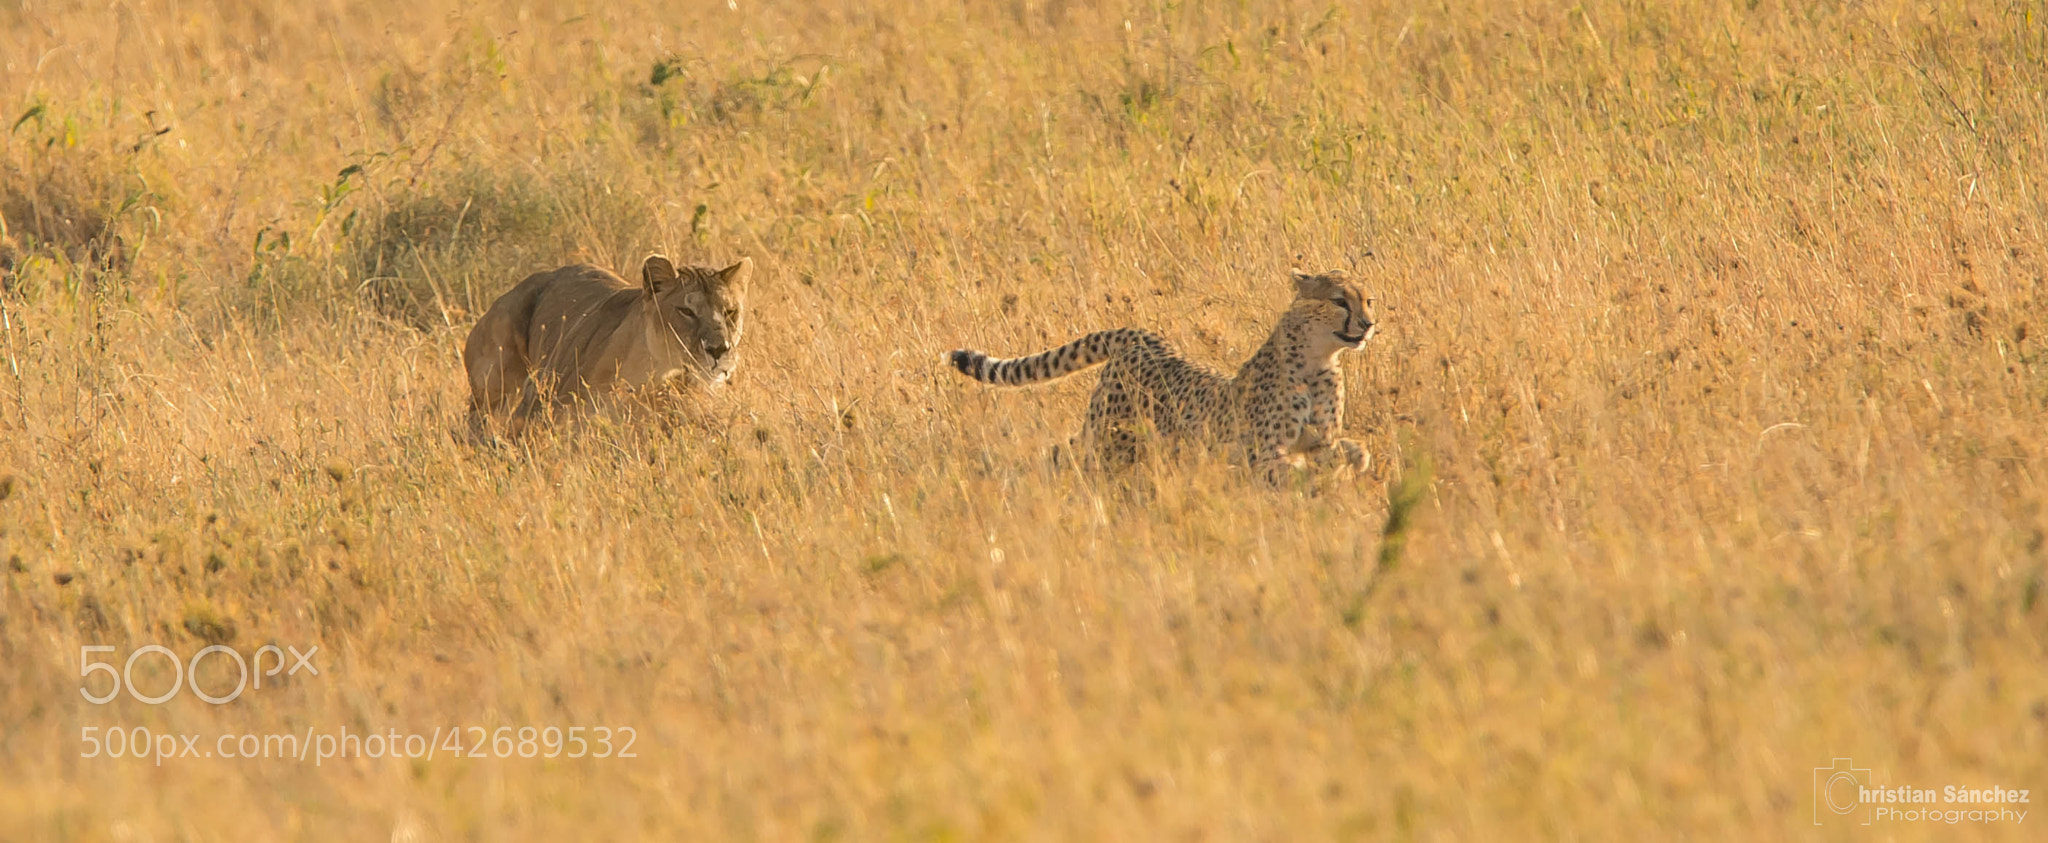 Photograph catch me if you can by Christian Sanchez on 500px